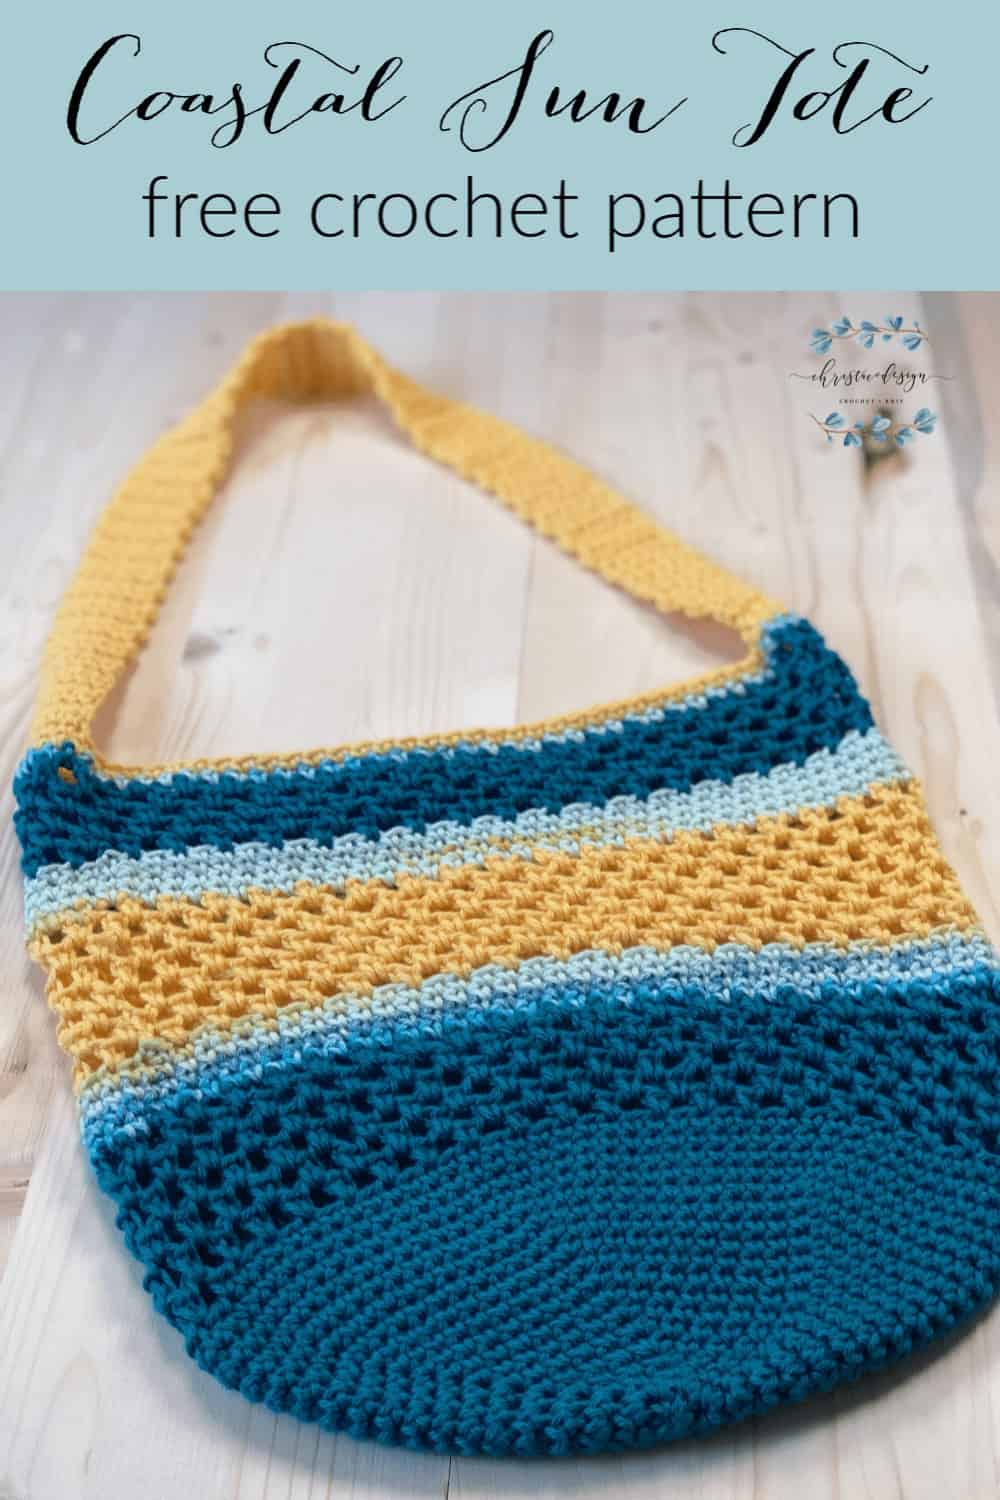 Pin image and text for free crochet tote bag in blue and yellow laid flat on wood table.